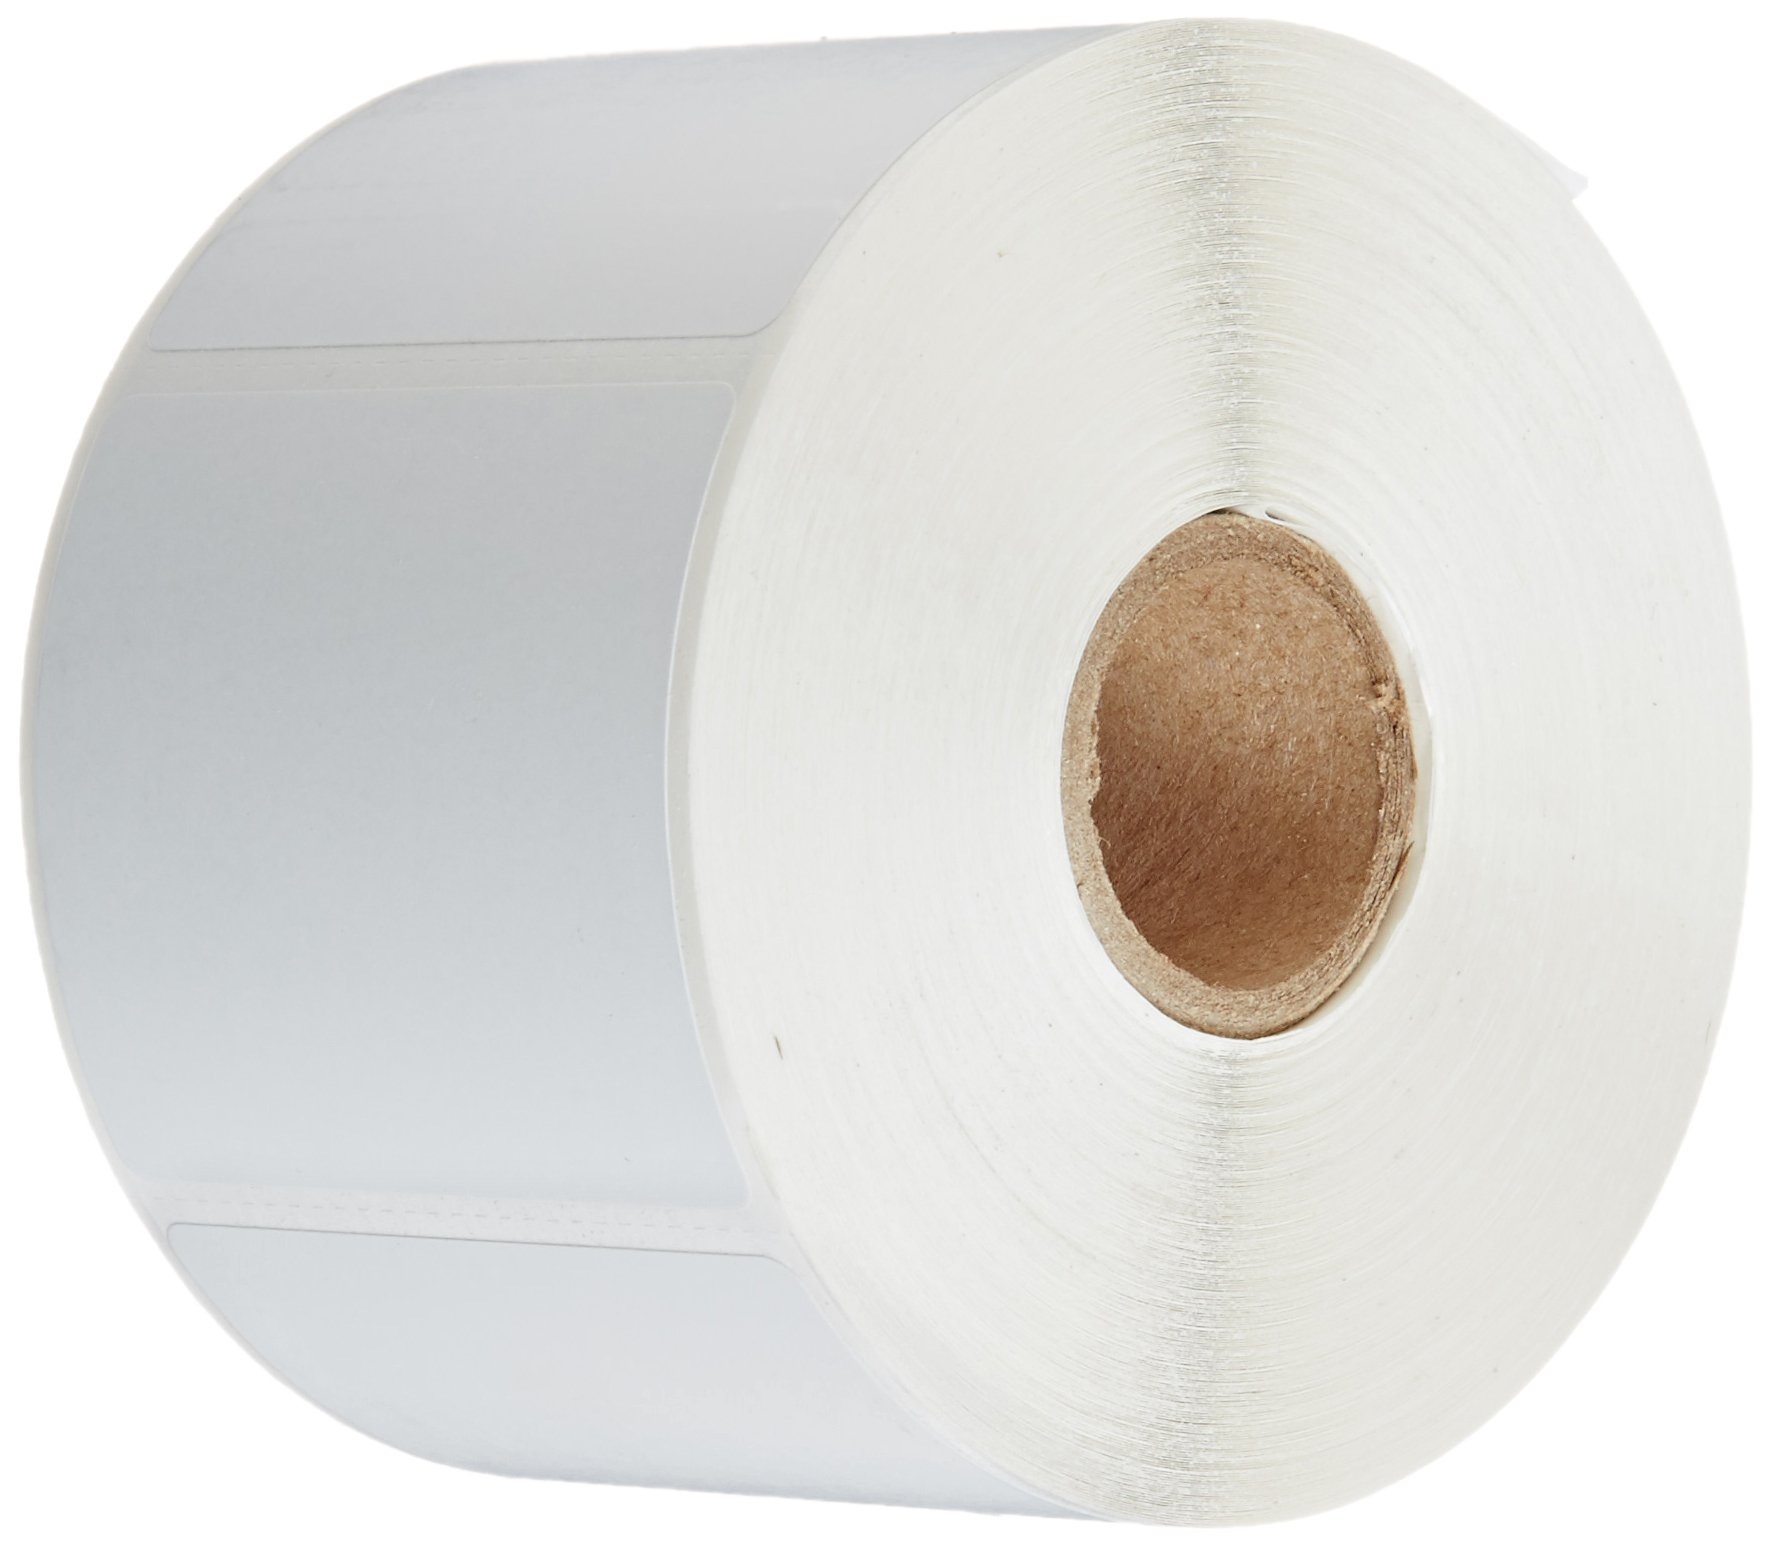 CompuLabel Direct Thermal Labels, 2 1/4 x 2 Inches, White, Roll, Permanent Adhesive, Perforations Between Labels, 700 Per Roll, 12 Rolls Per Carton (530605)